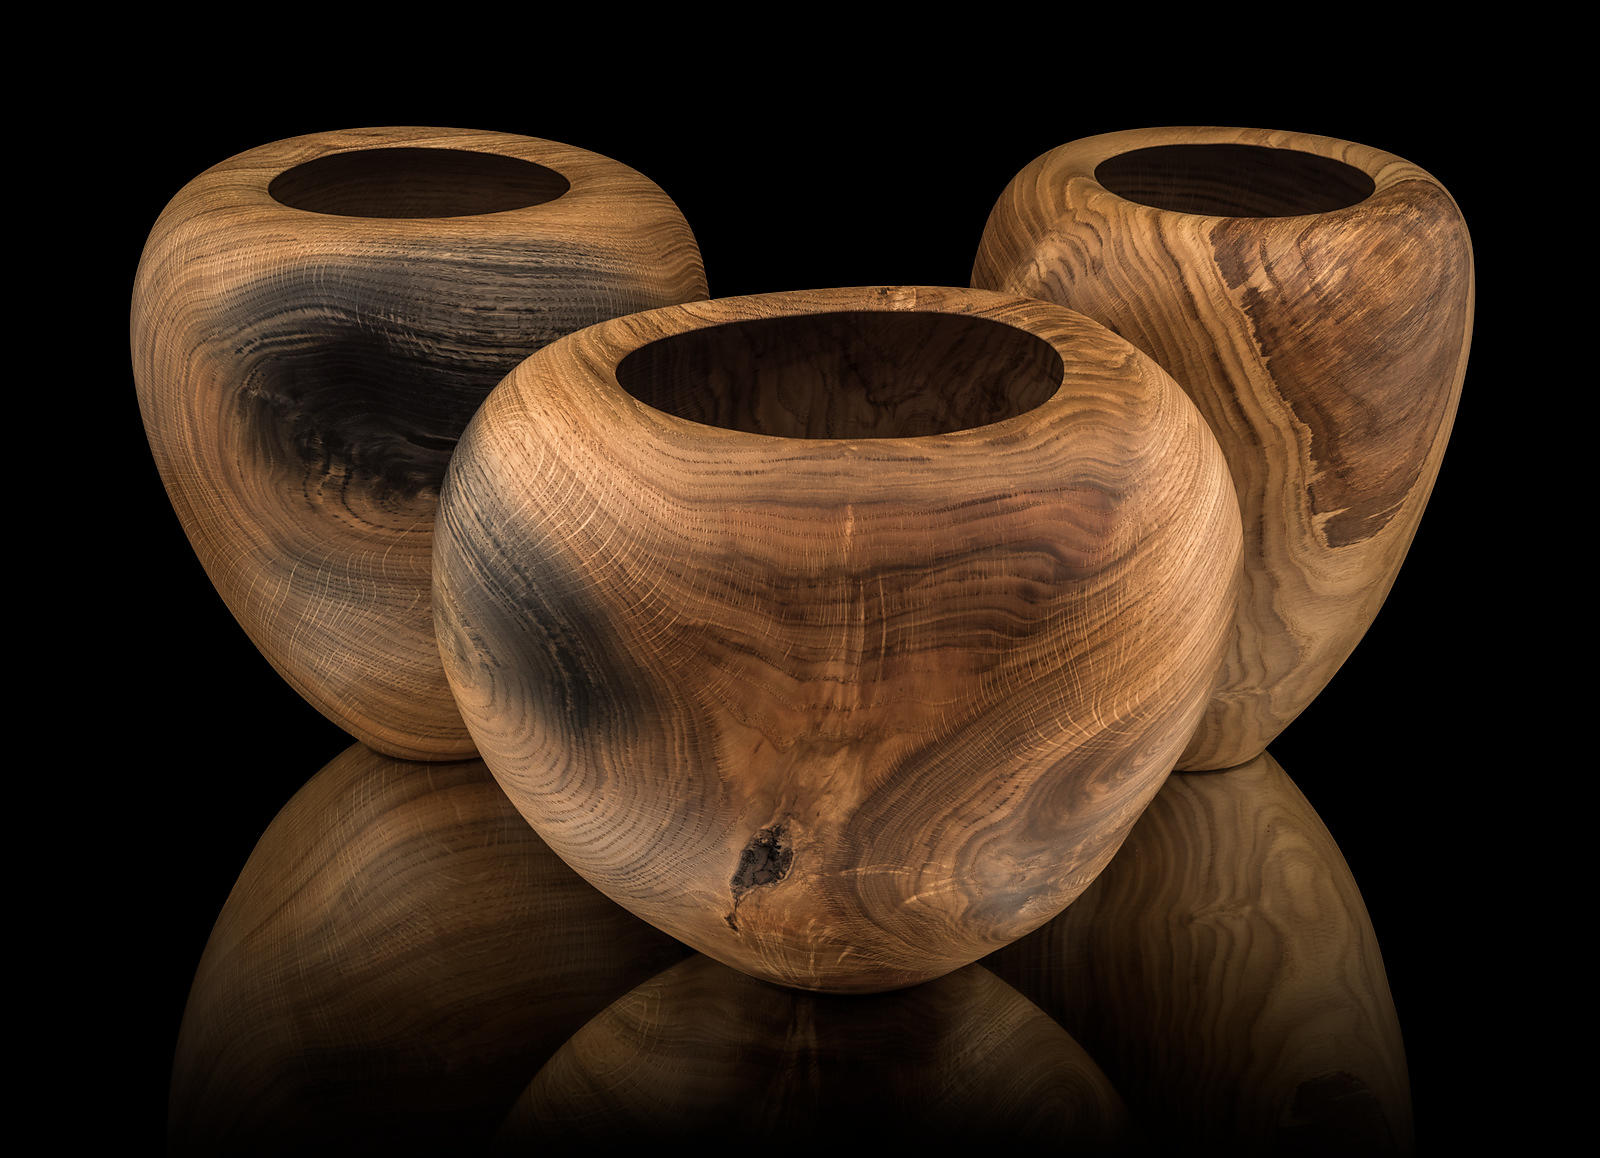 Bowls in Oak, diameter 230 – 350 mm, height 275 – 290 mm